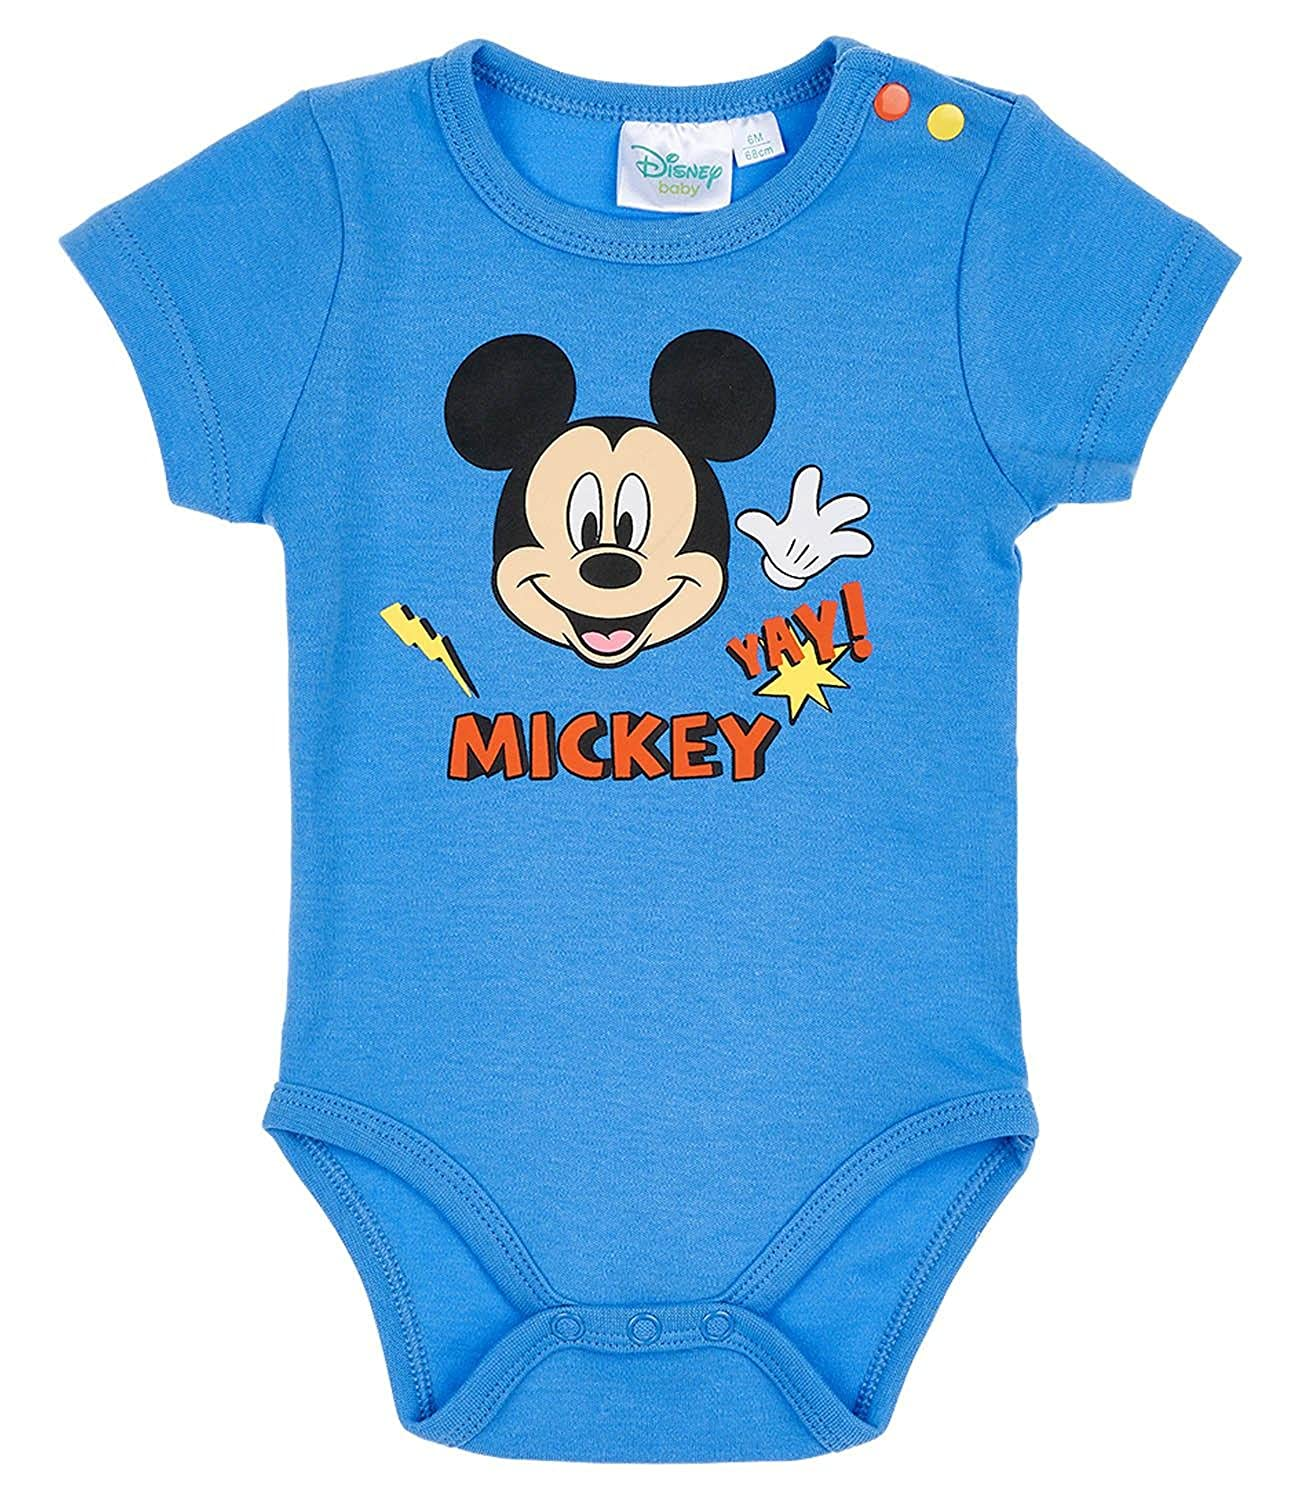 Disney Mickey Babies Boys Body neonato - blu